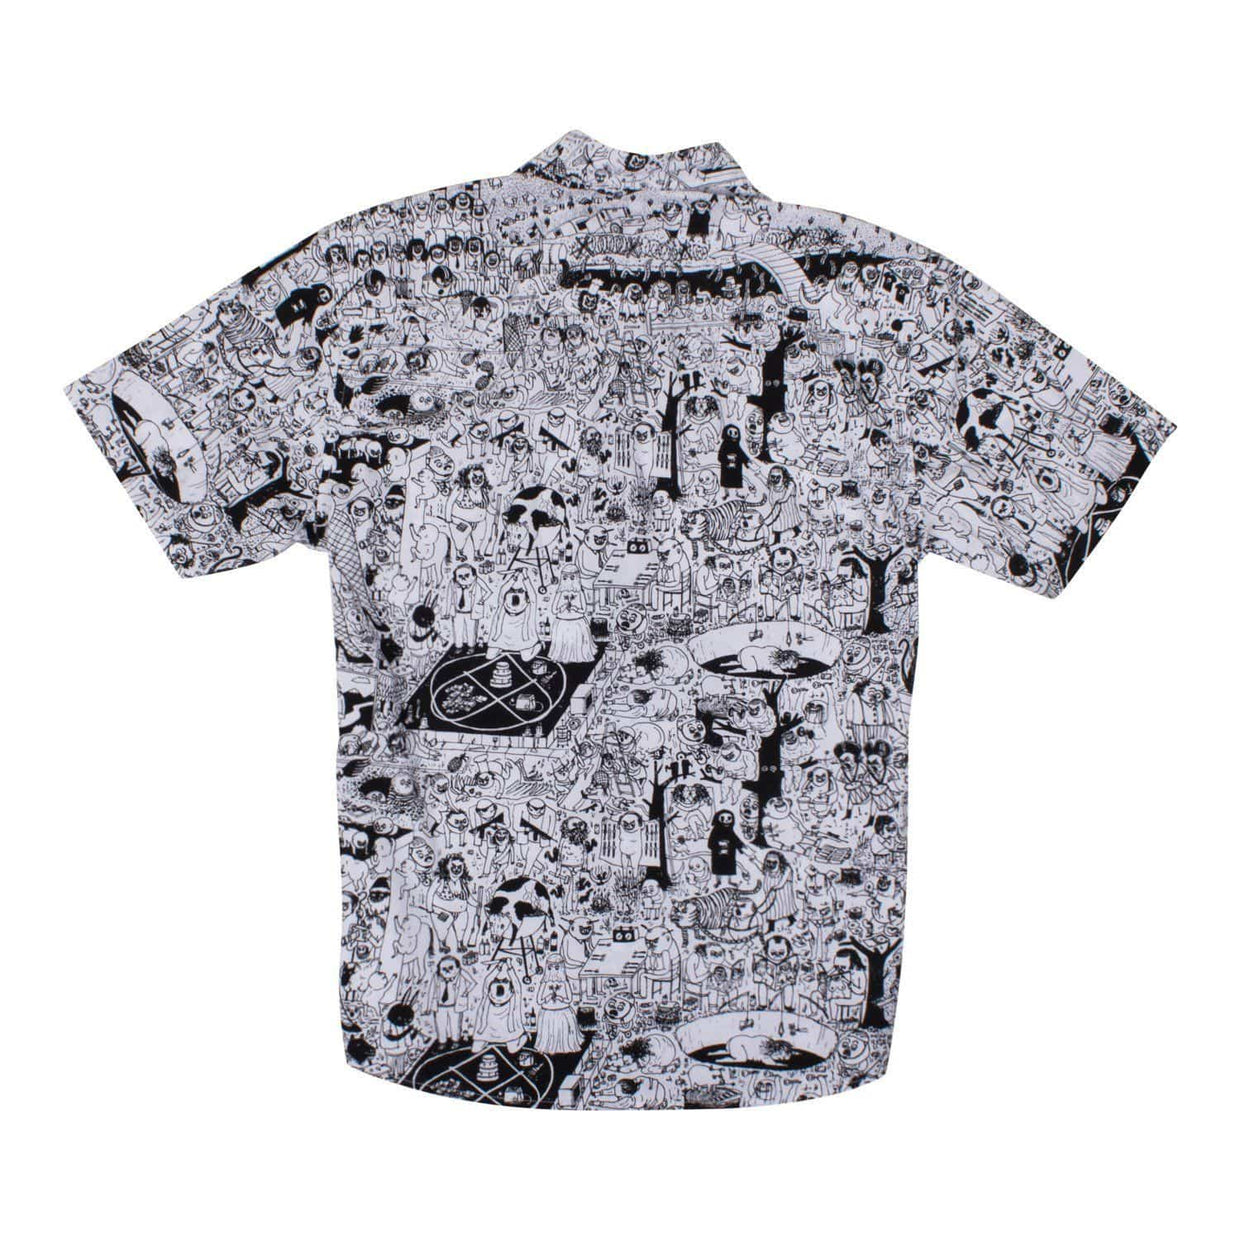 PC Short Sleeve Unisex Oxford Button Up Shirt - White/Black